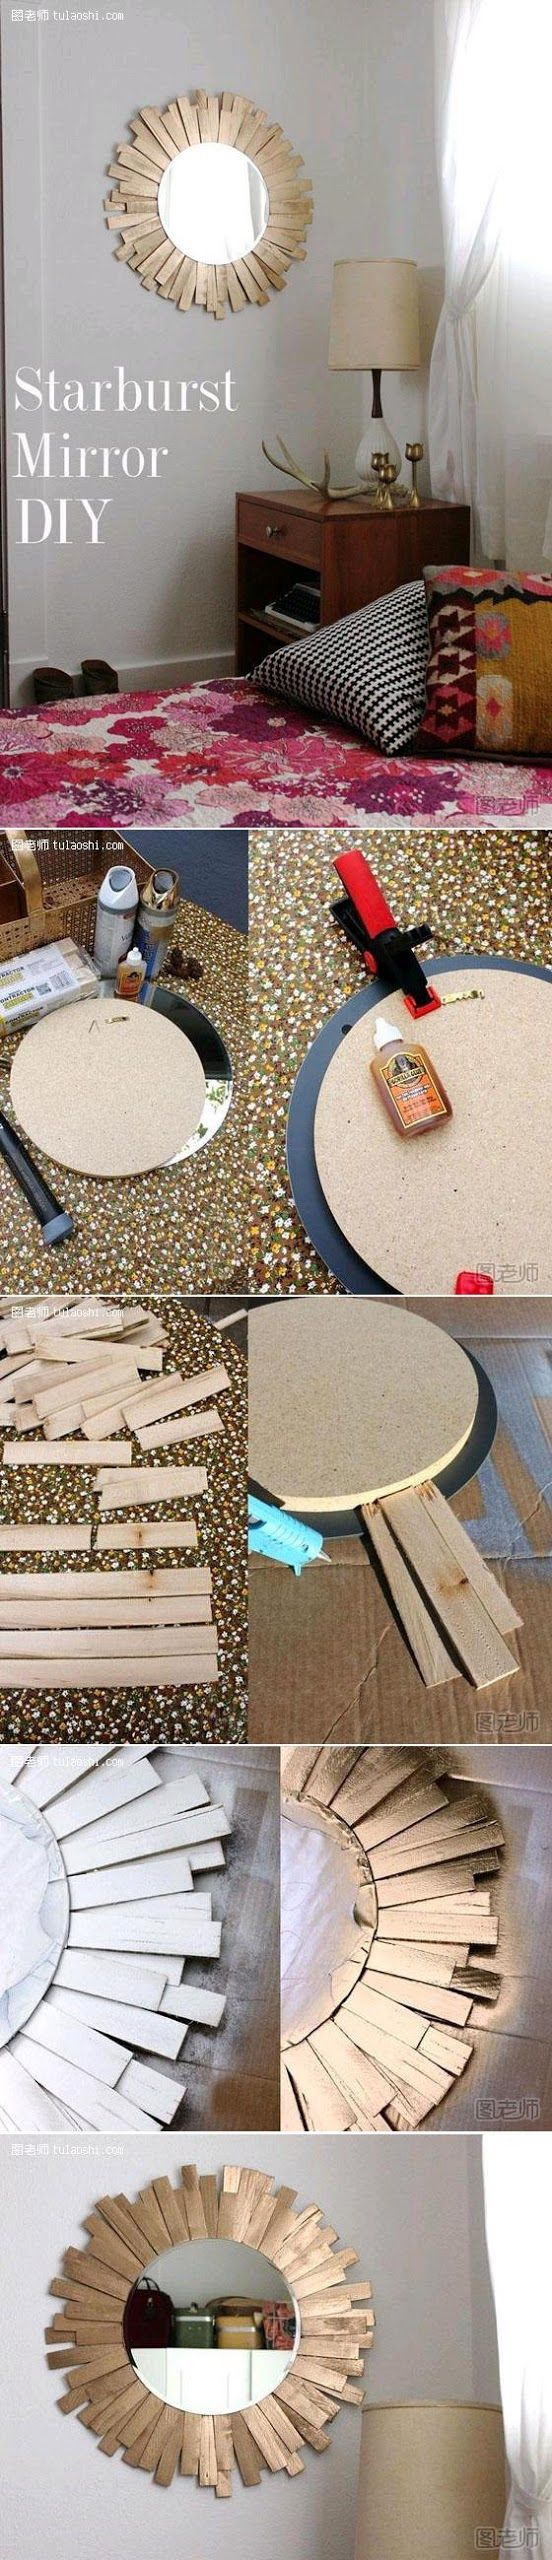 Diy : Starburst Mirror --instead of painting the wood chips gold, i'd stain it.  it's beautiful for an entry or that odd small wall between door ways.